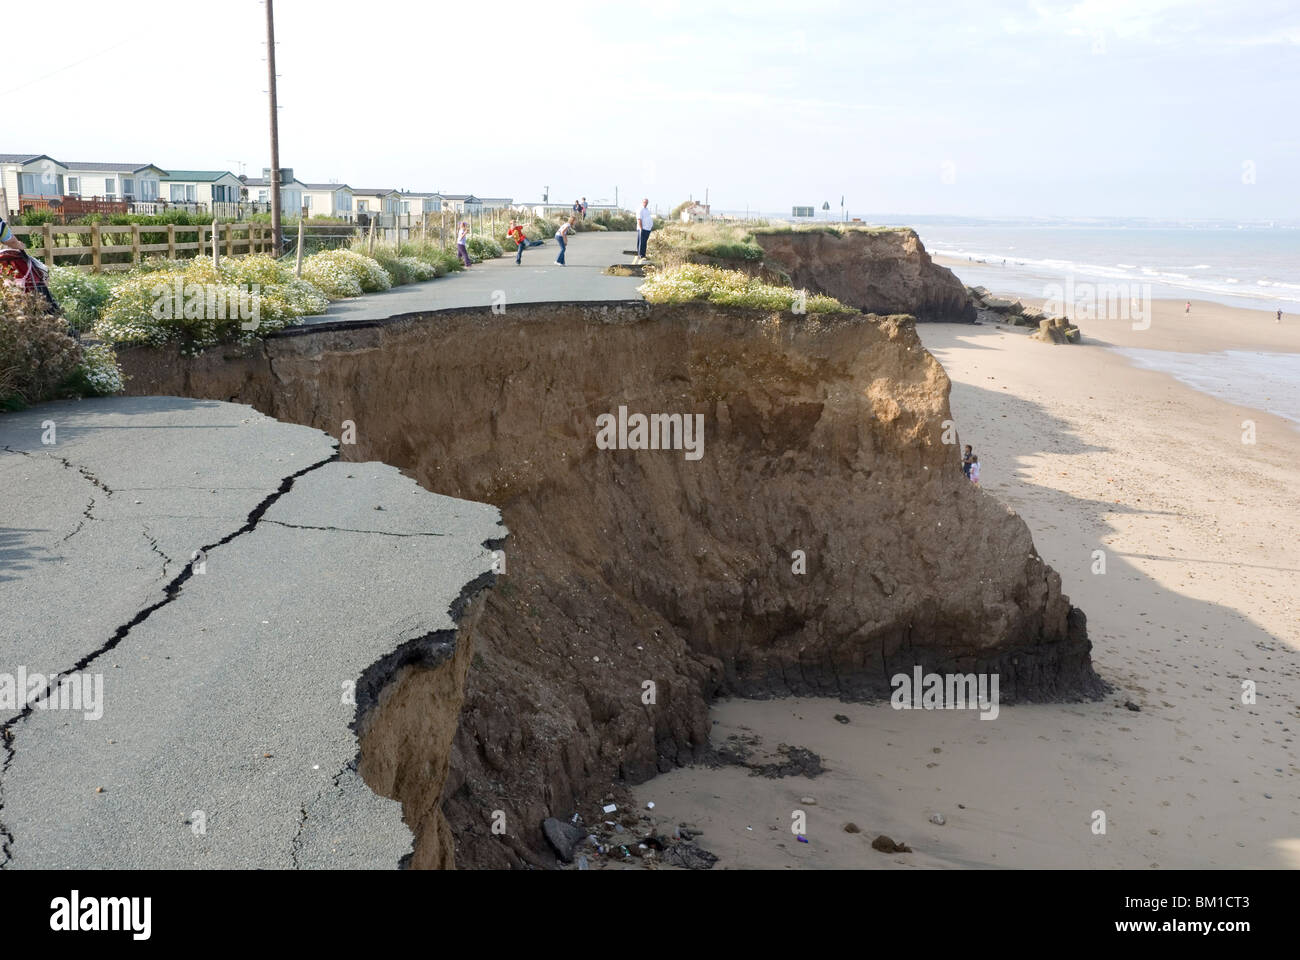 Coast erosion with active landslips in glacial till, Skipsea, Holderness coast, Humberside, England, United Kingdom - Stock Image